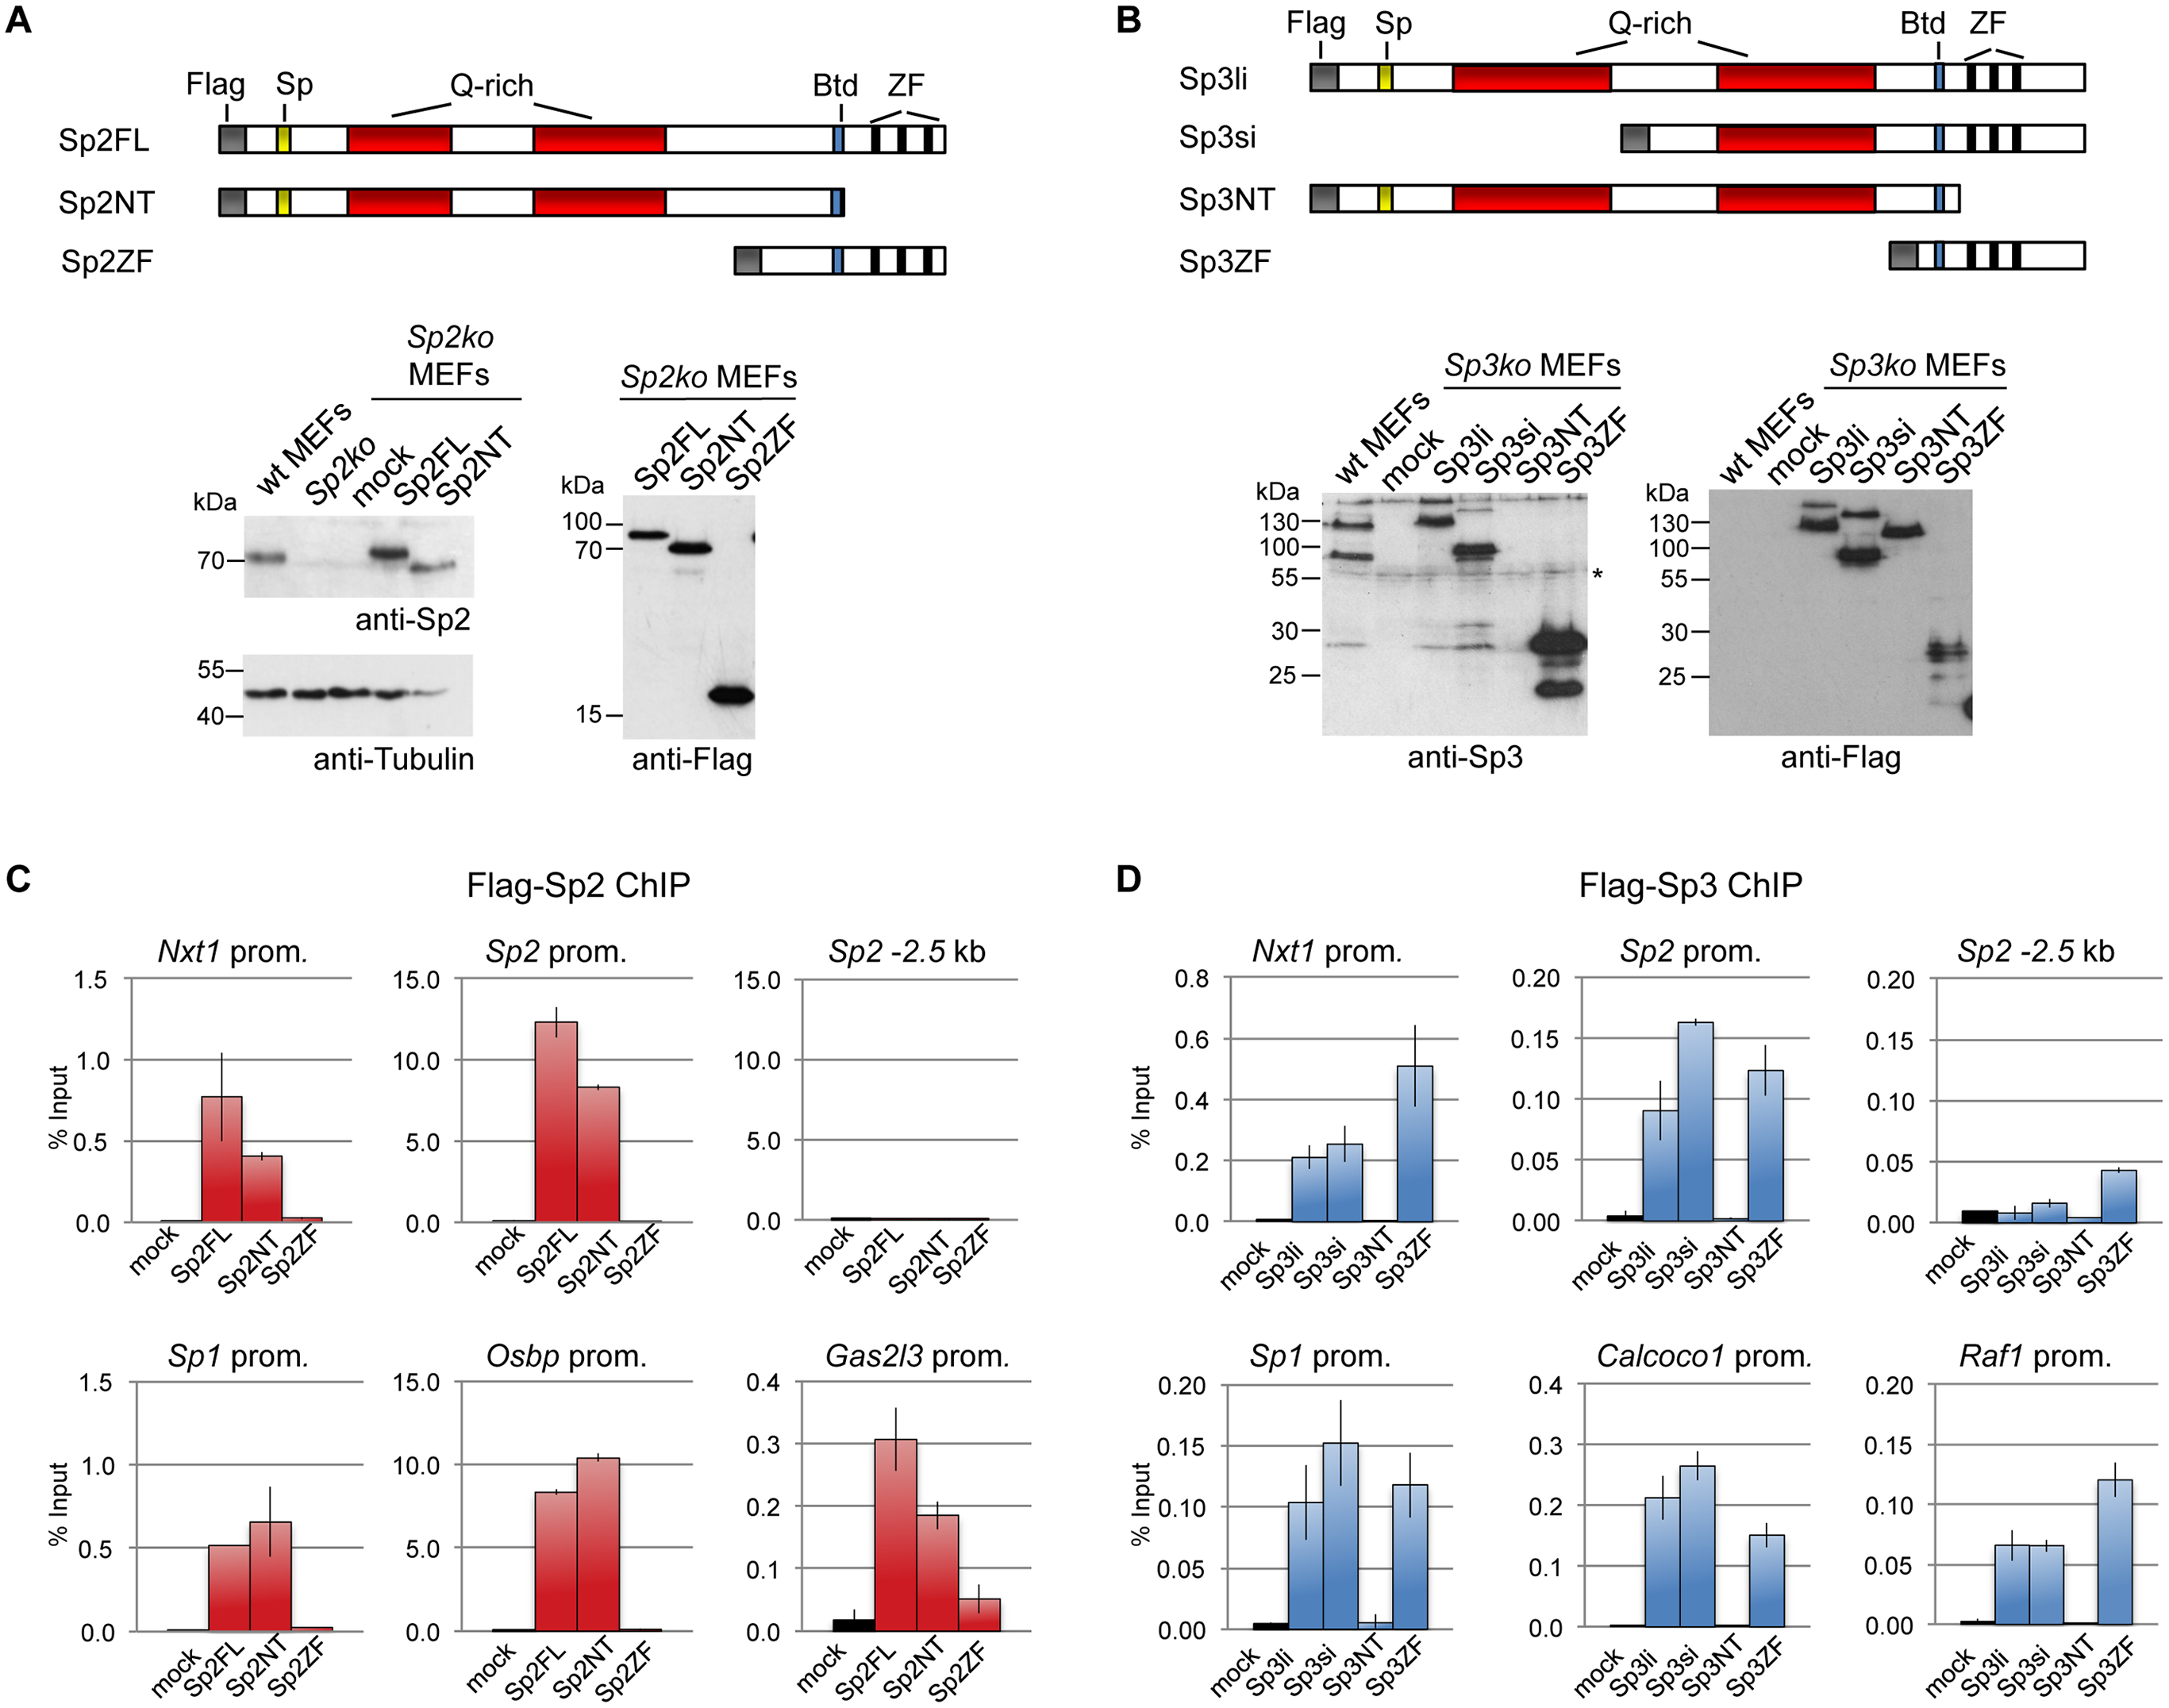 Different domains mediate recruitment of Sp2 and Sp3 to promoters <i>in vivo</i>.